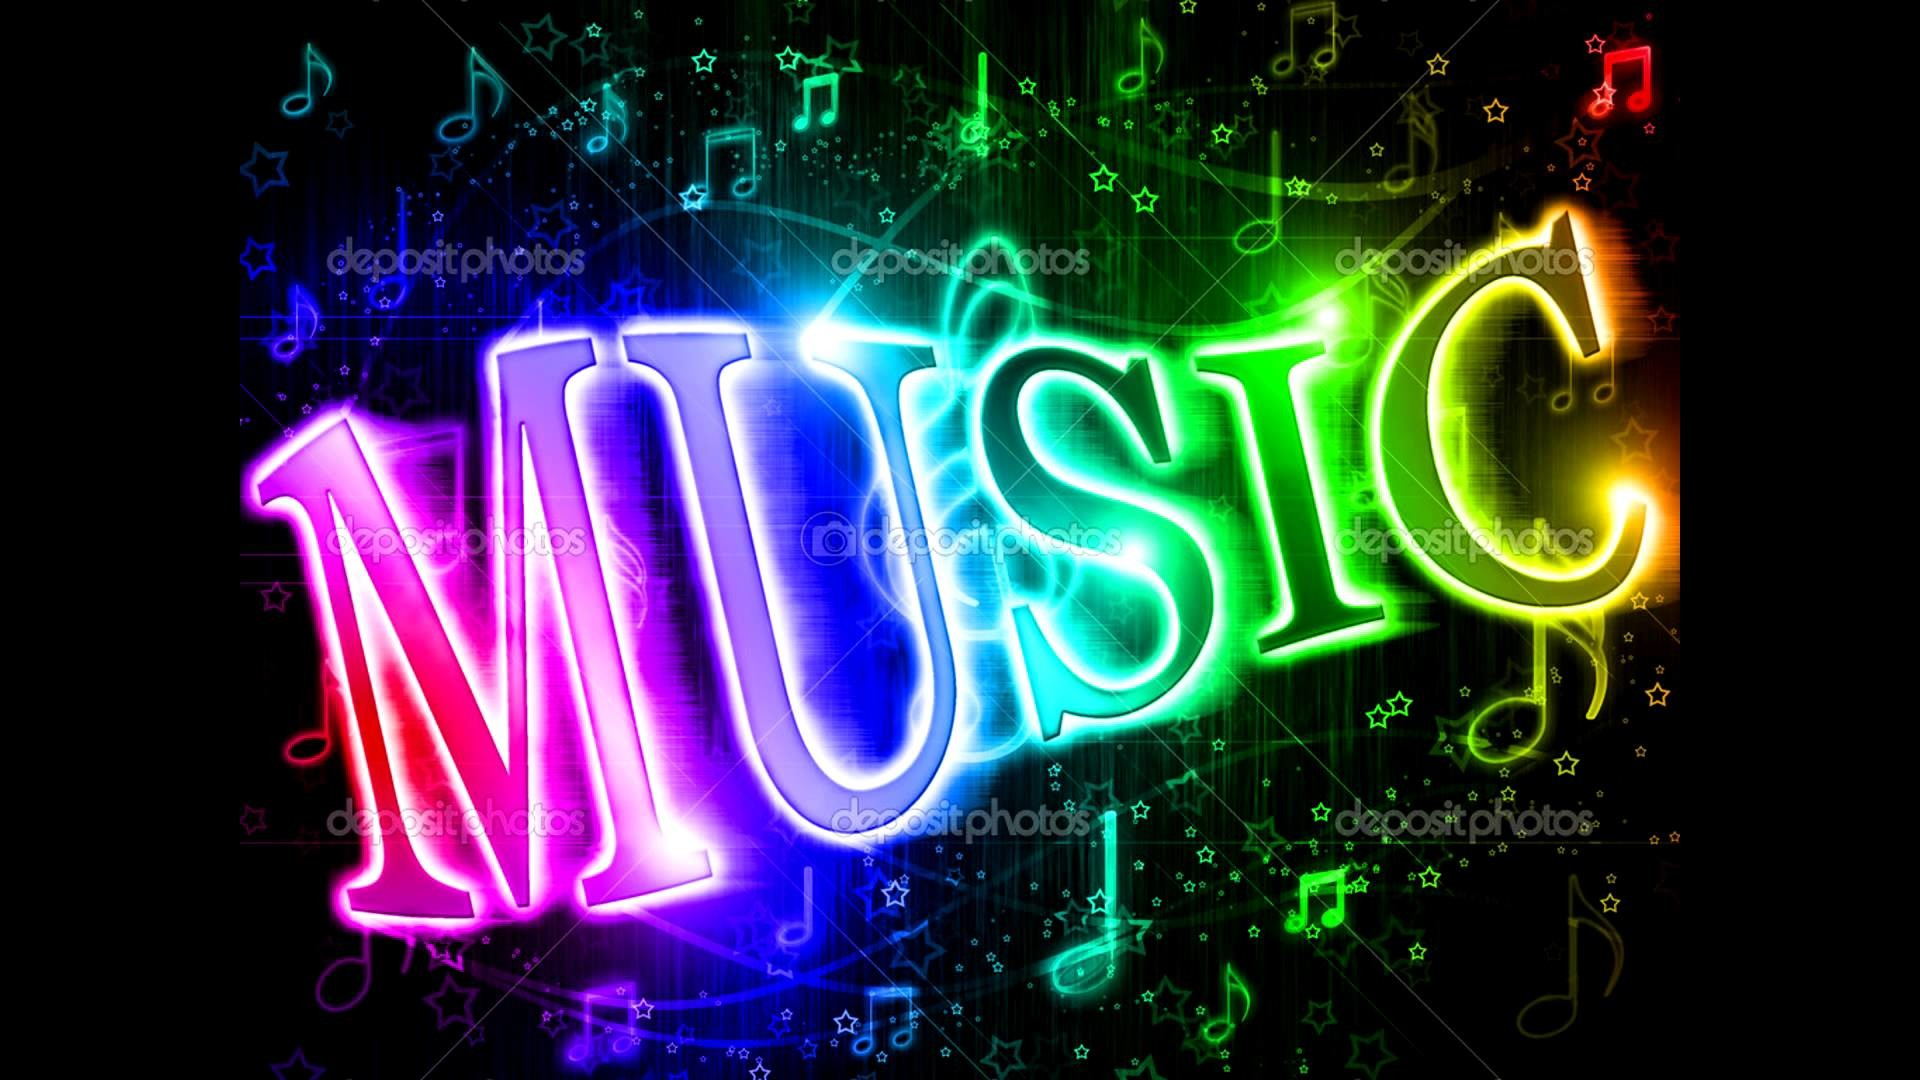 Cool Music Note Wallpapers: Cool Music Wallpapers (64+ Images